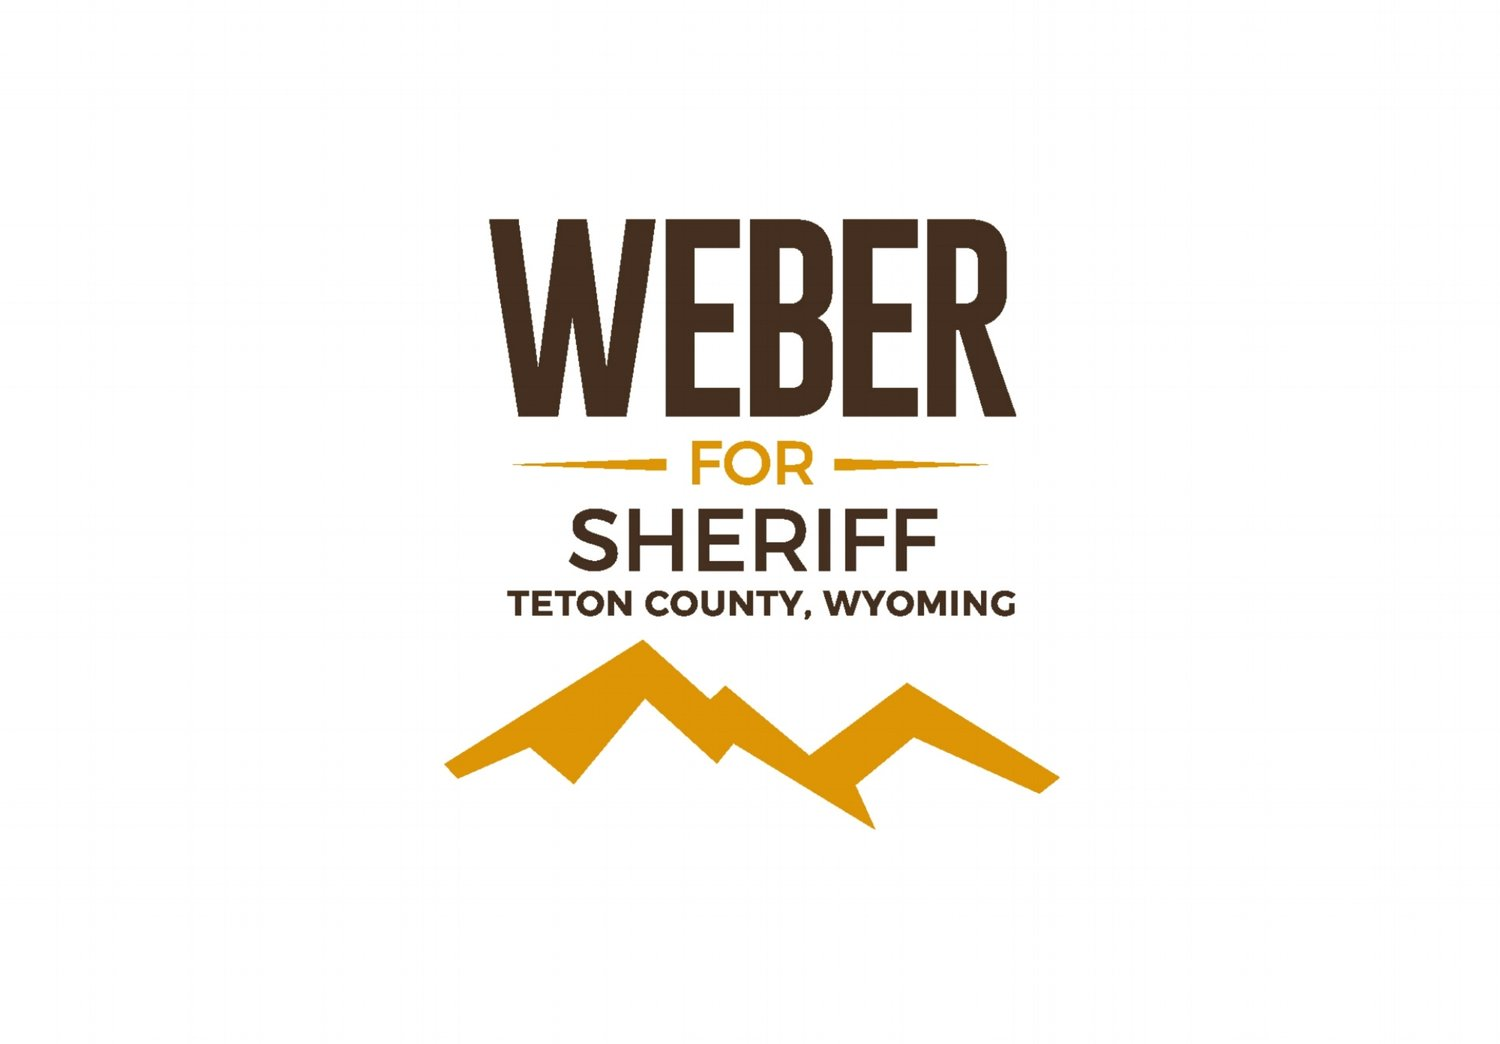 Weber for Sheriff